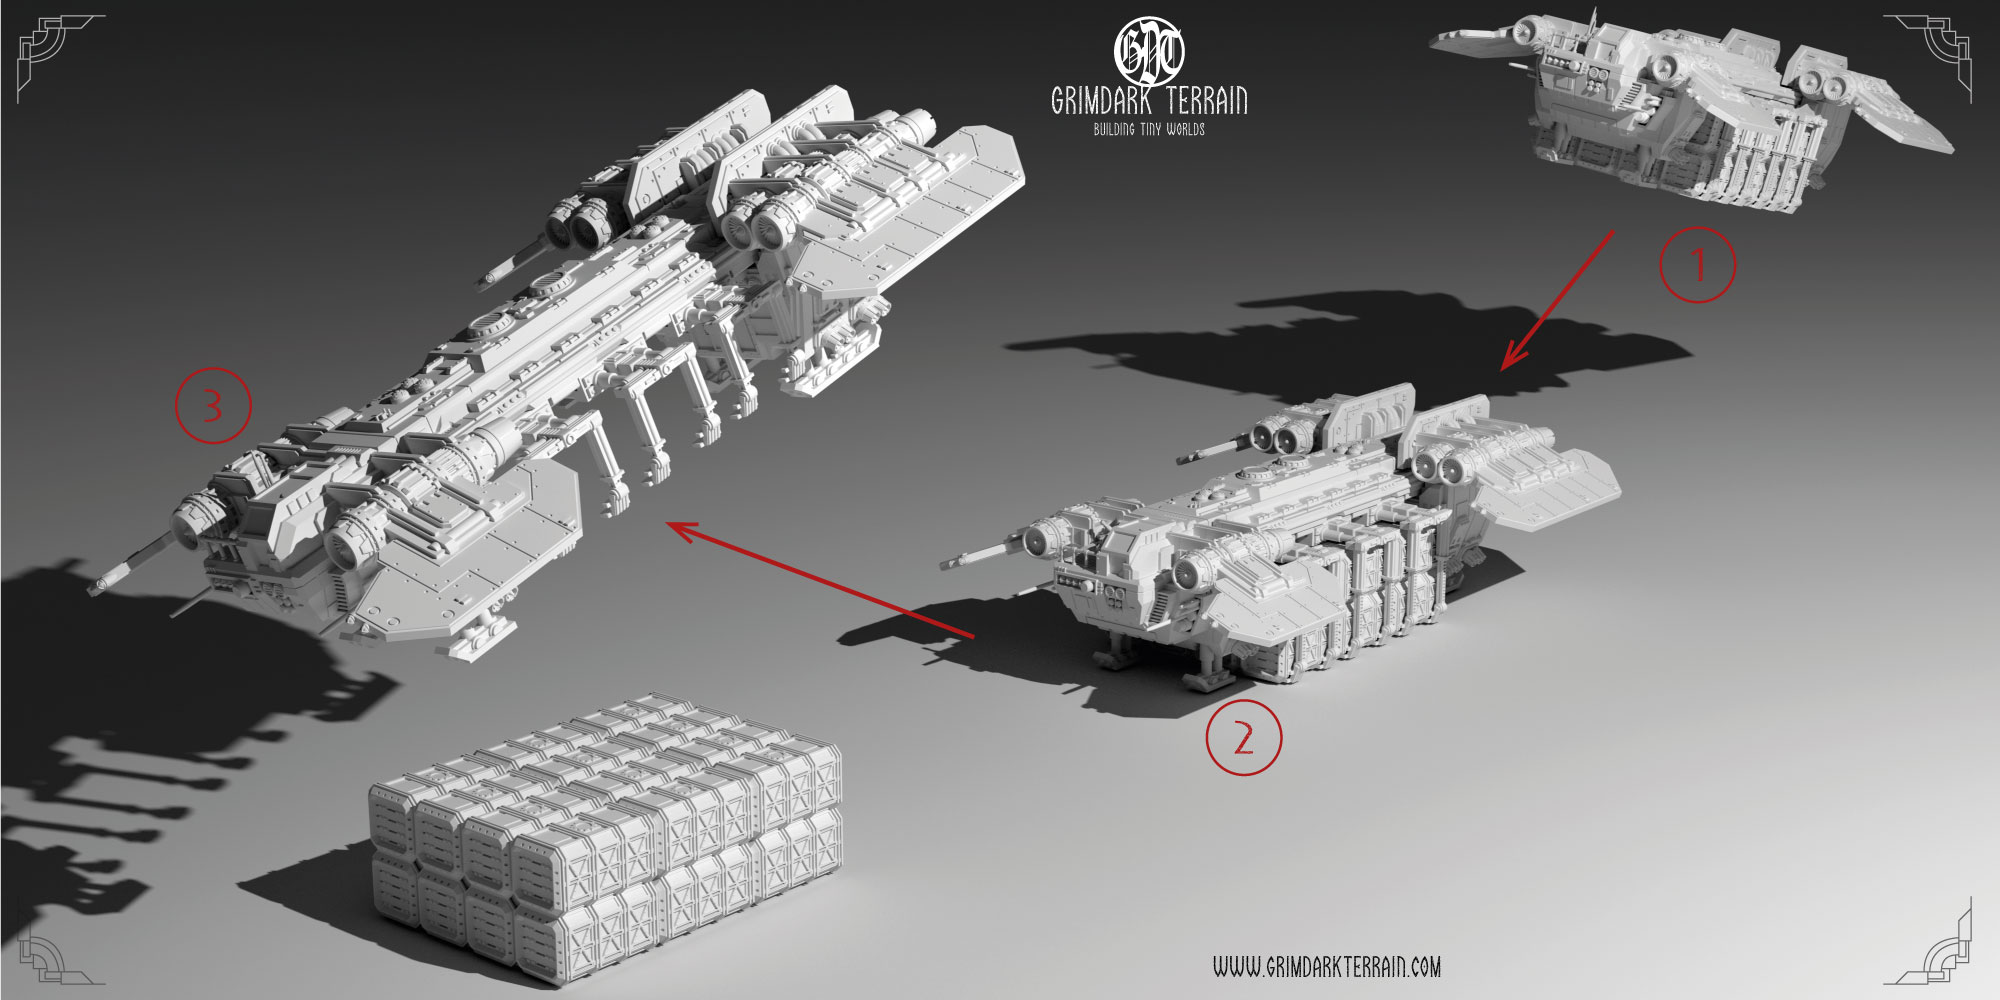 Template Construct: The Samson Freighter